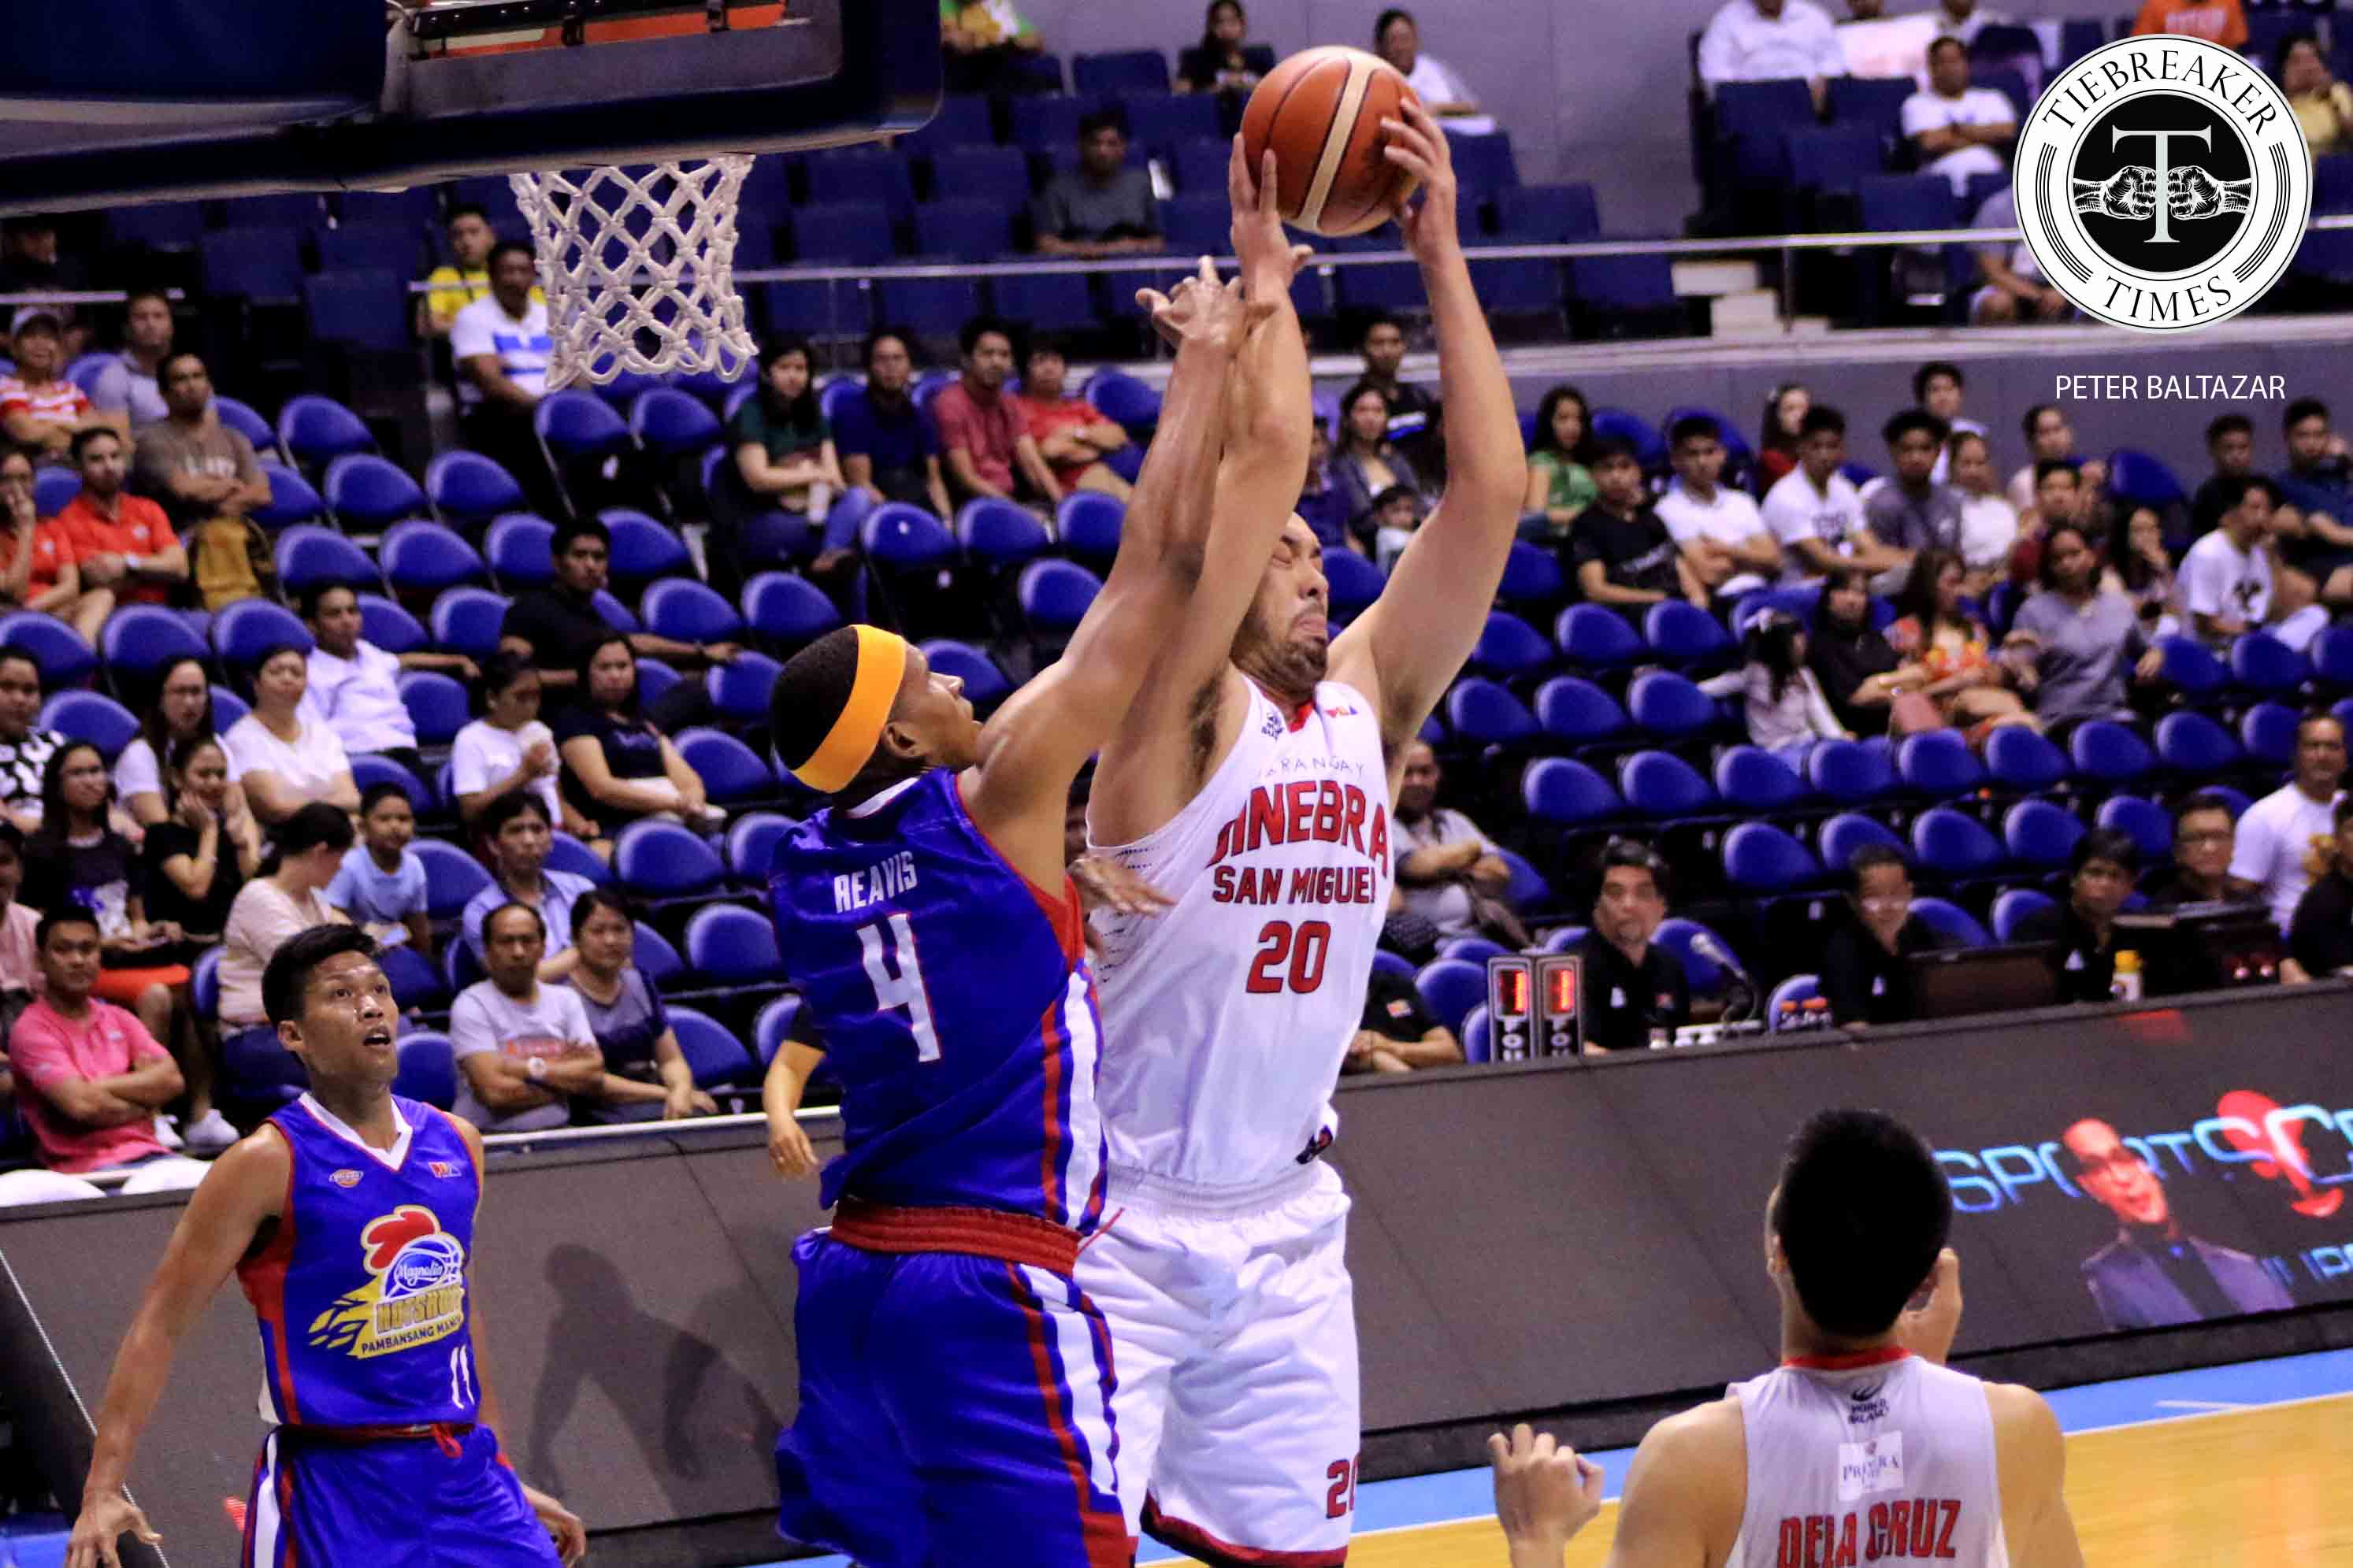 Greg Slaughter Laments Ginebra's 20 Turnovers In Blowout Loss To Magnolia photo